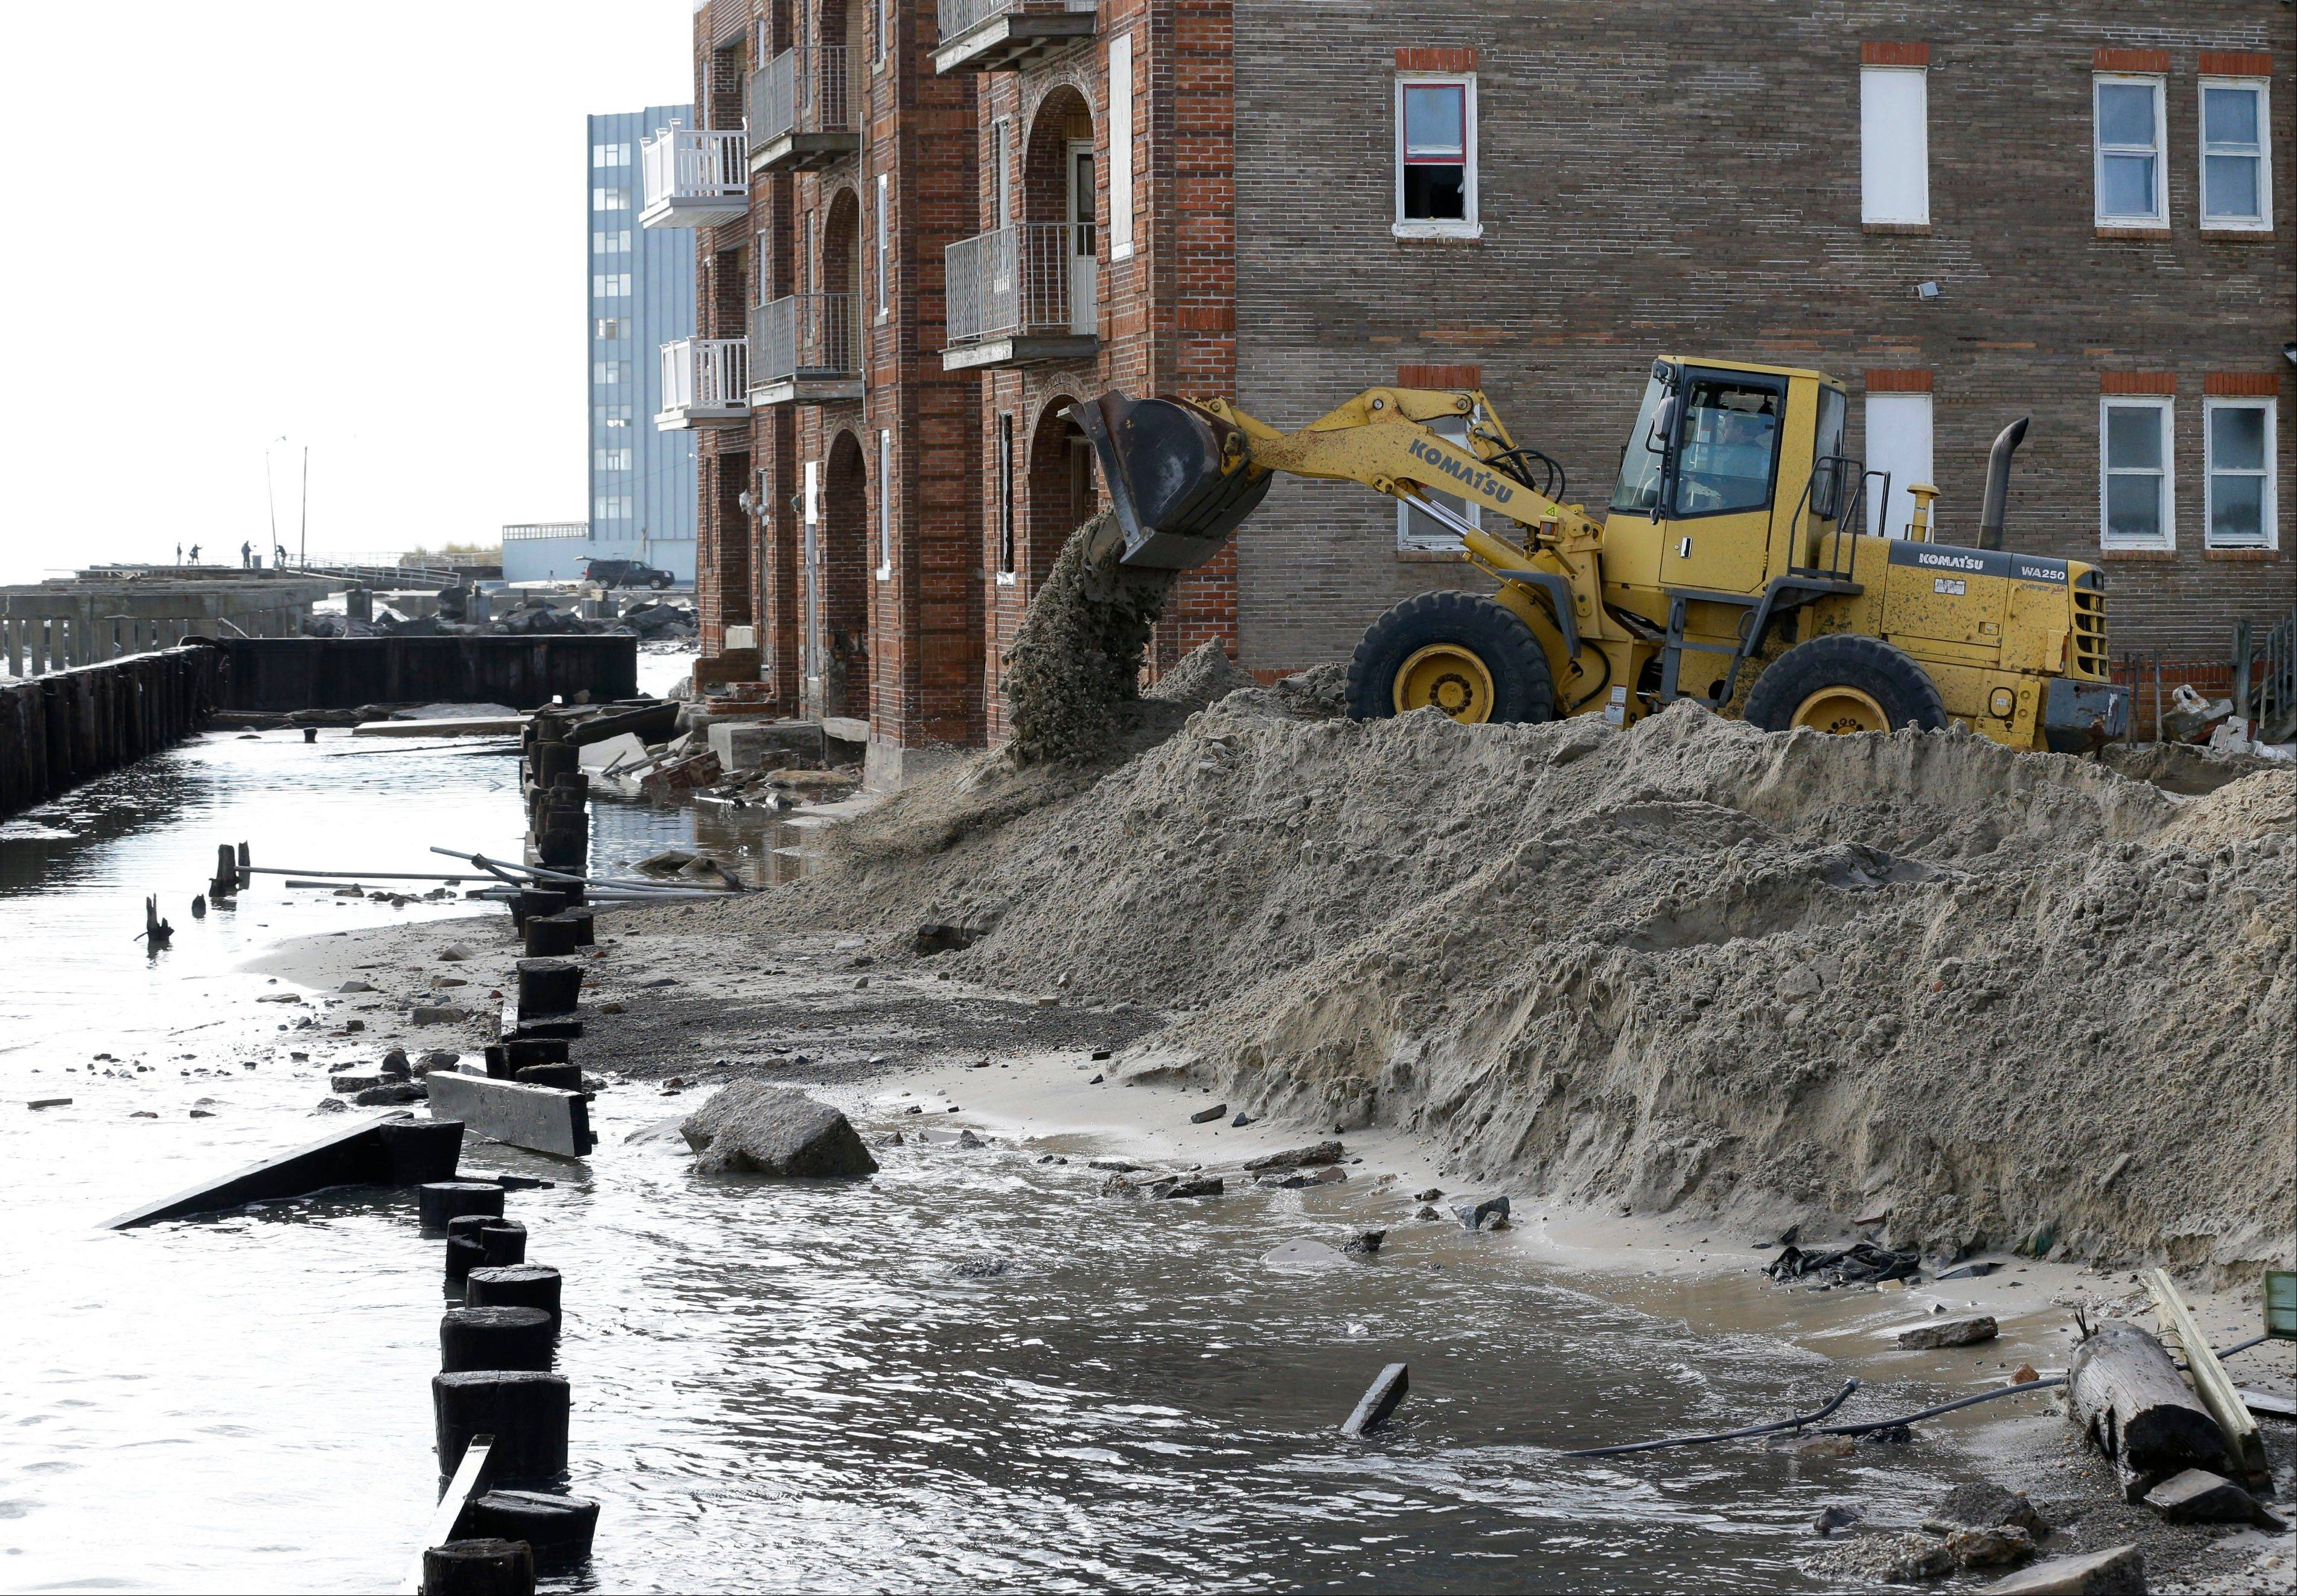 A worker uses a backhoe to move sand near a boardwalk that was destroyed by superstorm Sandy in Atlantic City, N.J., Wednesday, Oct. 31, 2012. Sandy, the storm that made landfall Monday, caused multiple fatalities, halted mass transit and cut power to more than 6 million homes and businesses.